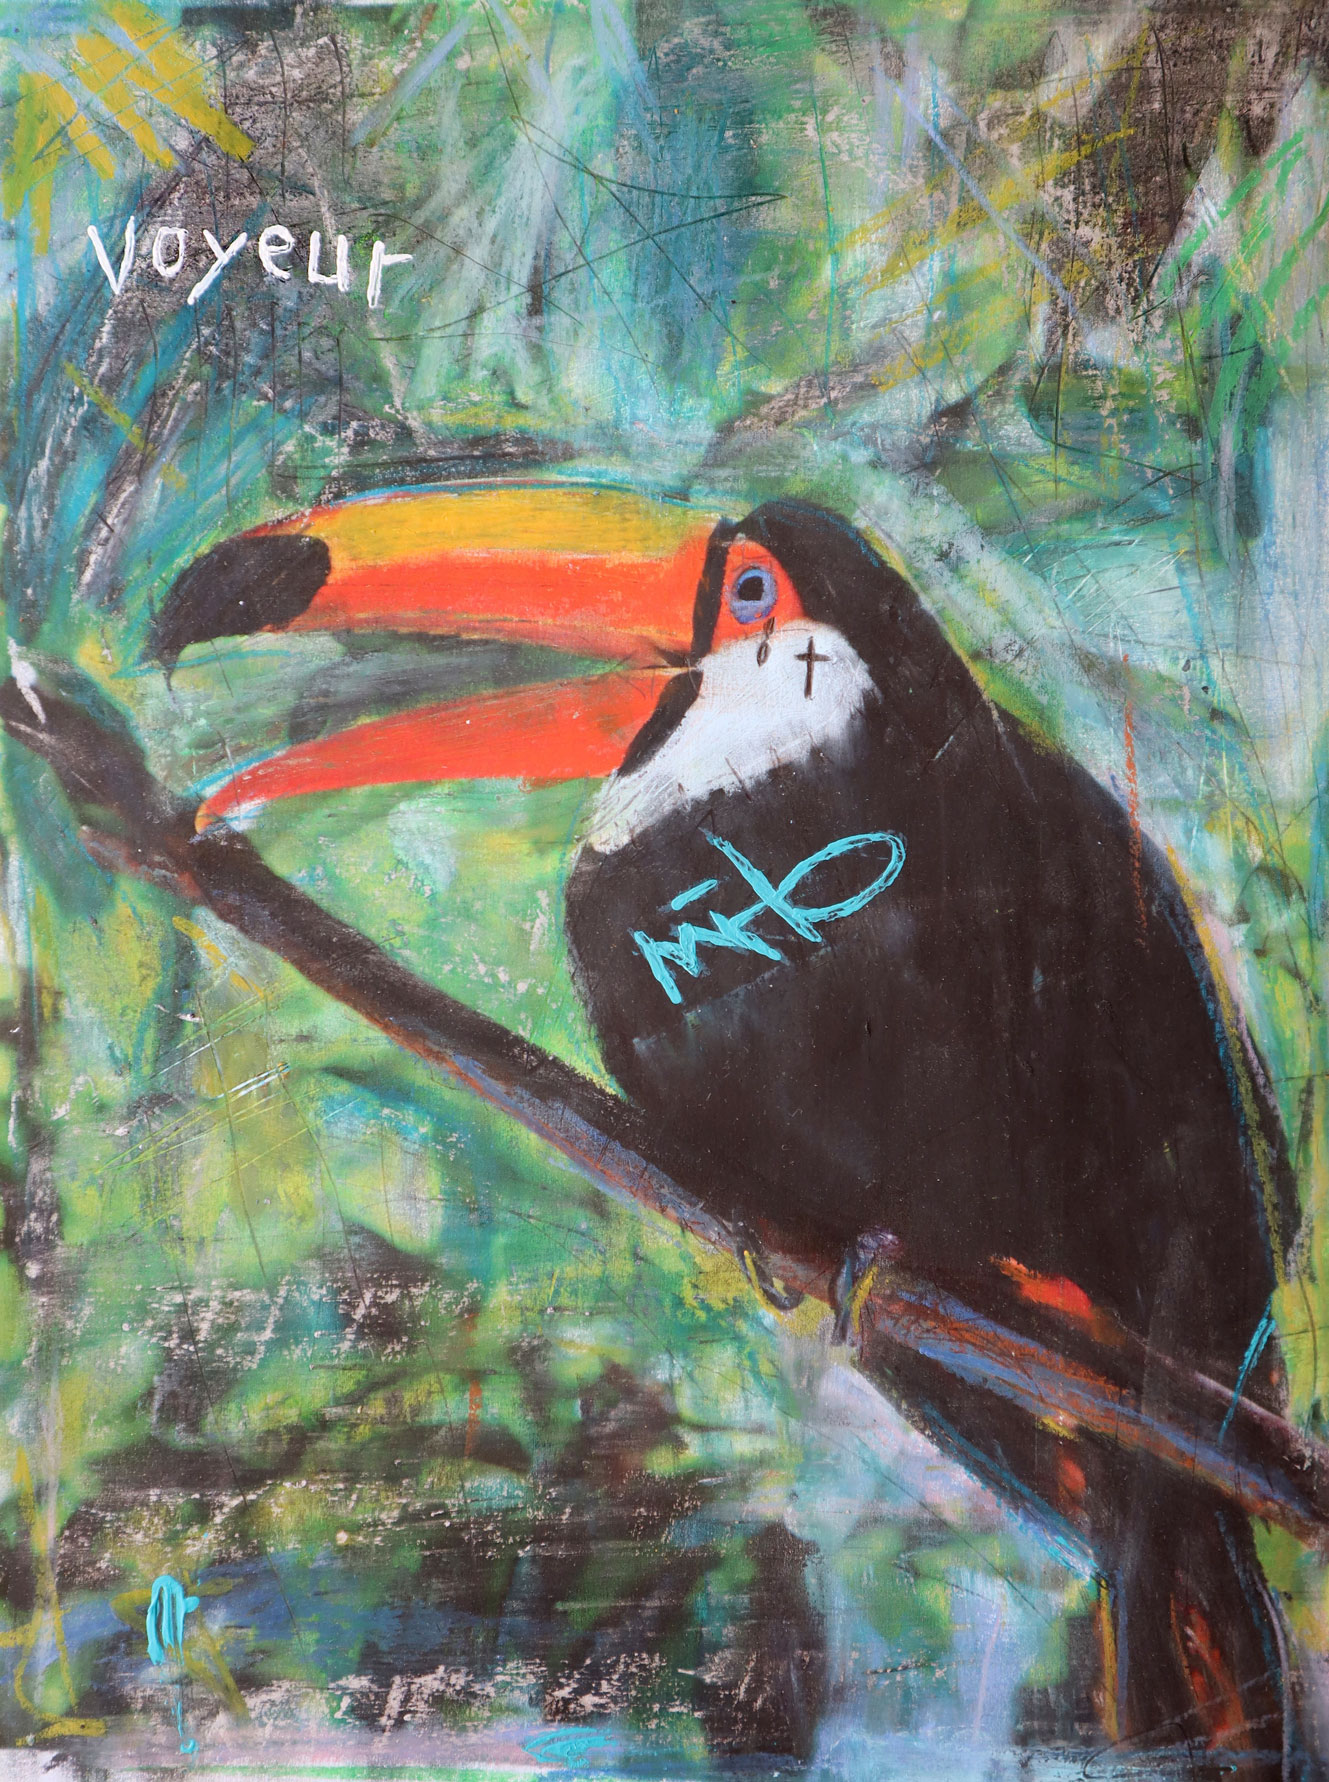 'Free as a bird' - chalkpainting